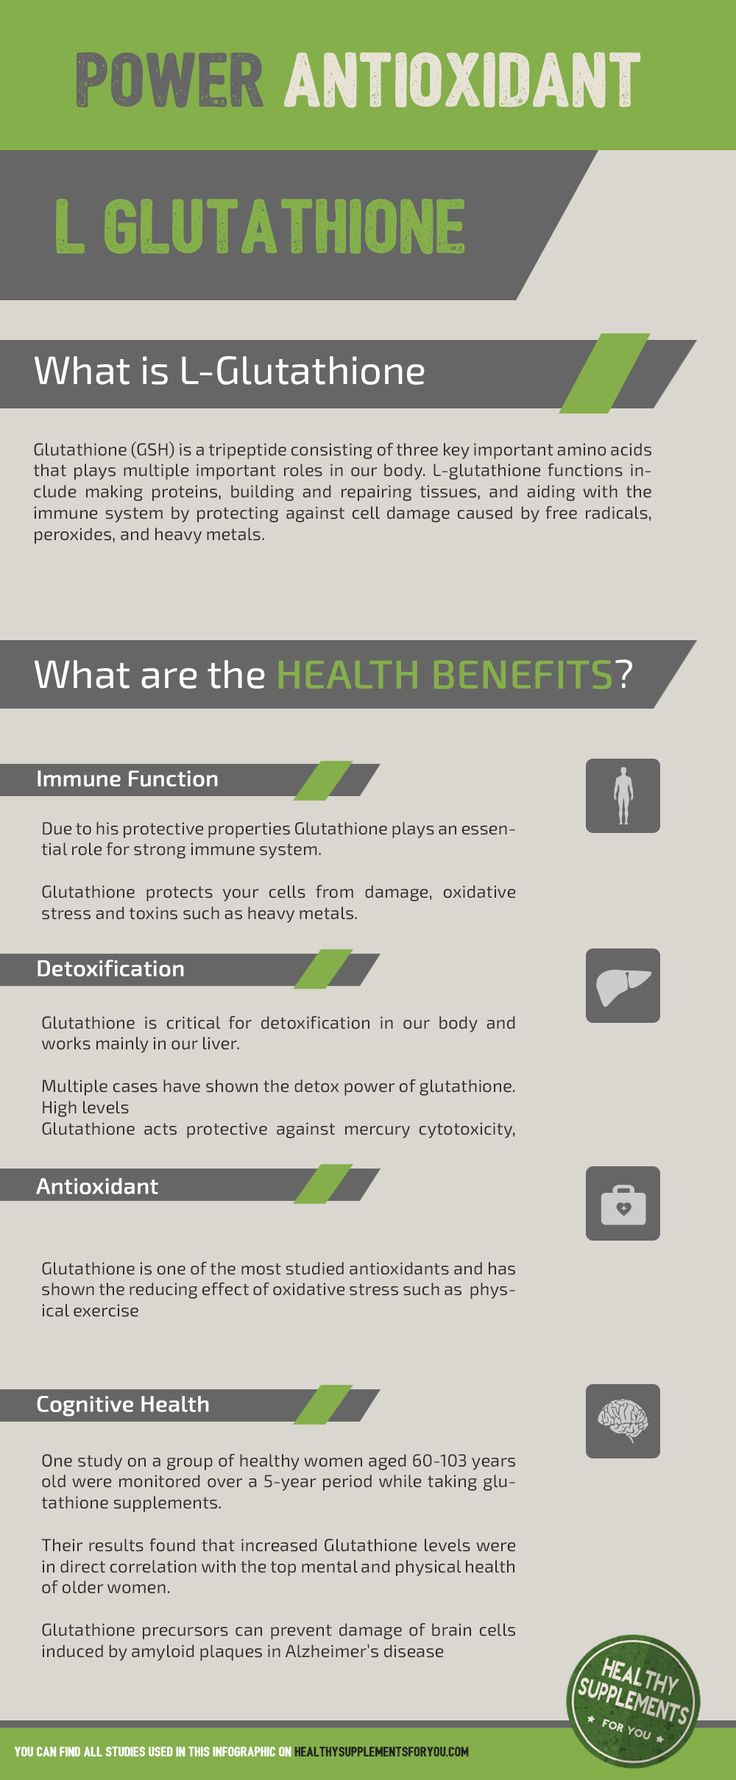 What is L-Glutathione? What are the HEALTH BENEFITS? Source: I have already written an informative article about L-Glutathione. I have tried to shorten the information for an infographic. I hope you like it. Feel free to share it. #glutathione #fitness #health #supplements #antioxidants #nutrition #bulletproof #jarrow #fitness #cognitivehealth #detoxification #detox https://healthysupplementsforyou.com/power-antioxidant-glutathione-infographic/